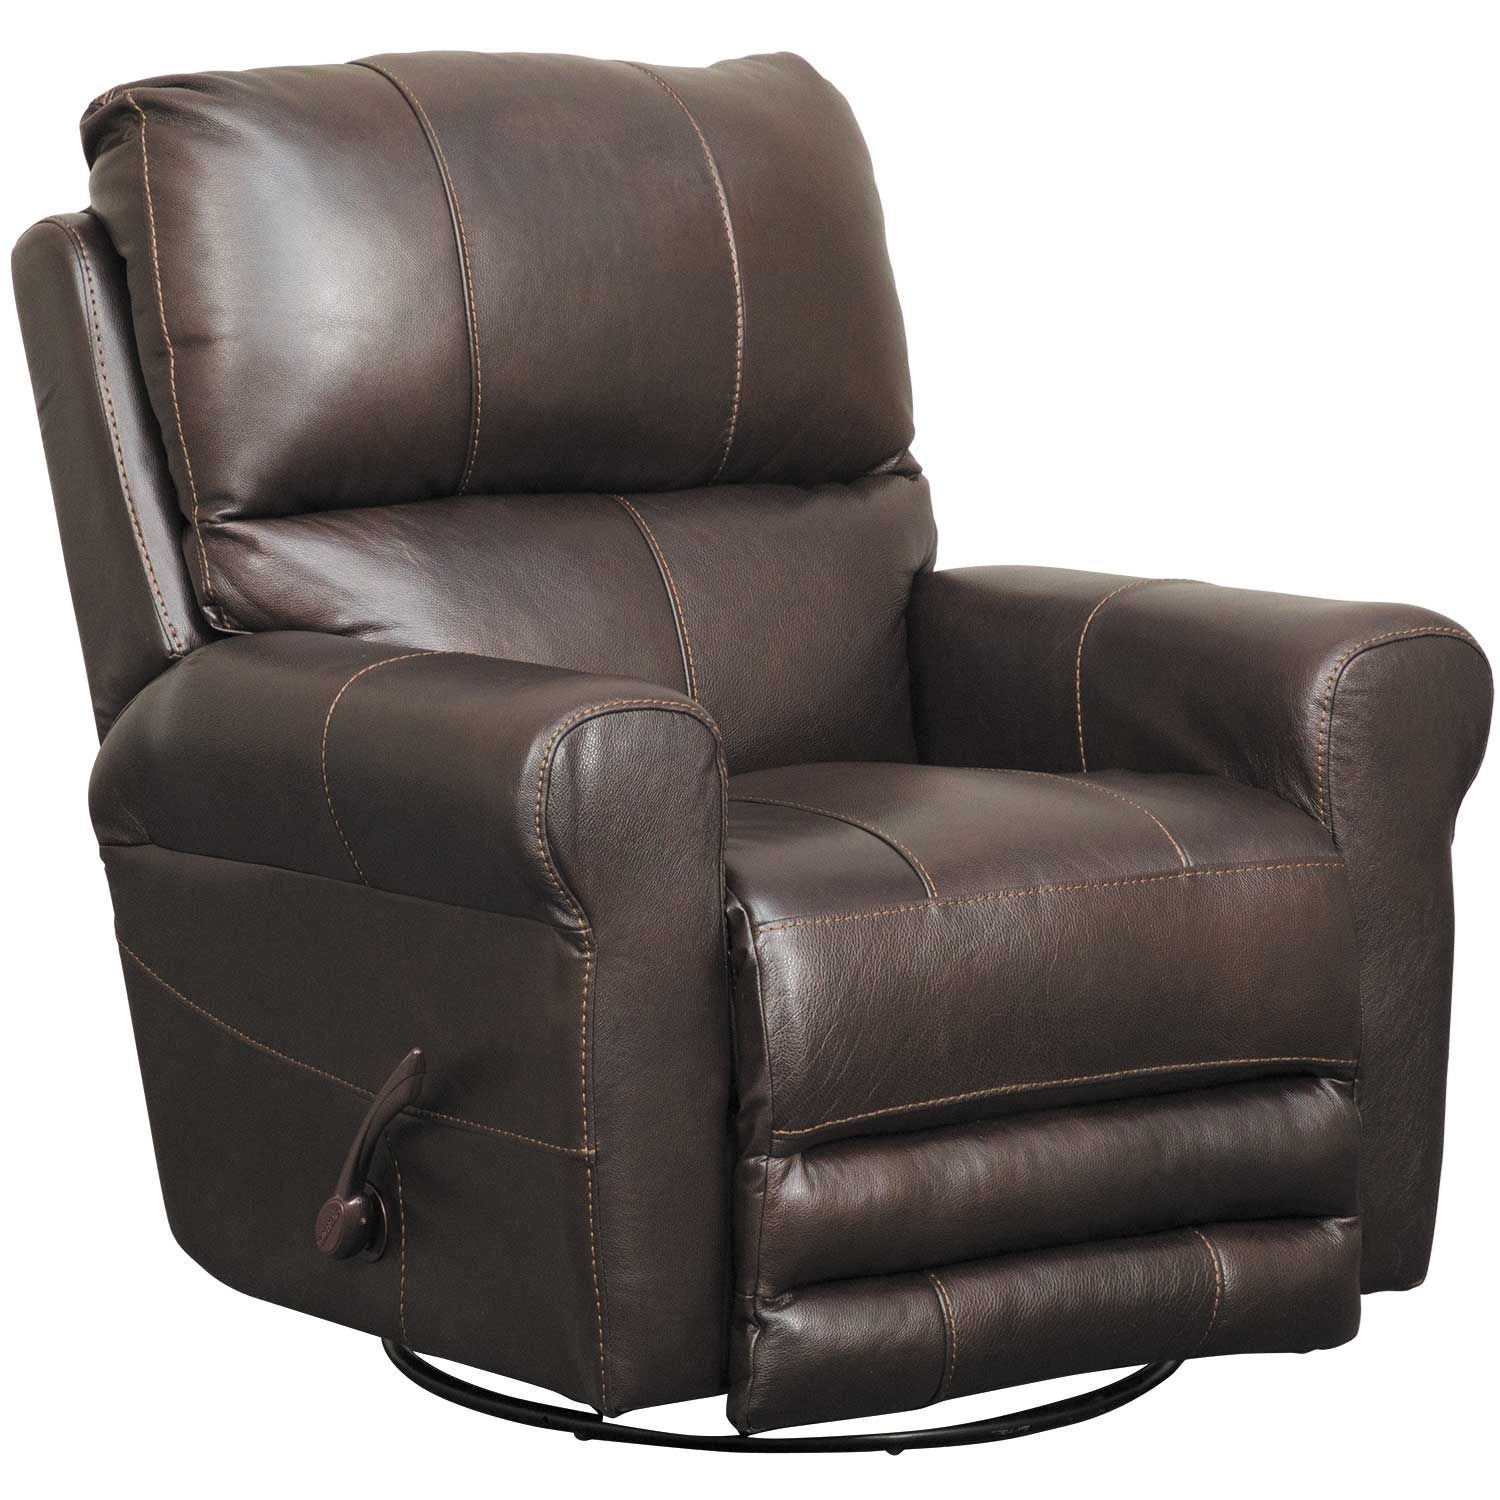 Chocolate Italian Leather Rocker Recliner 0l0 4766